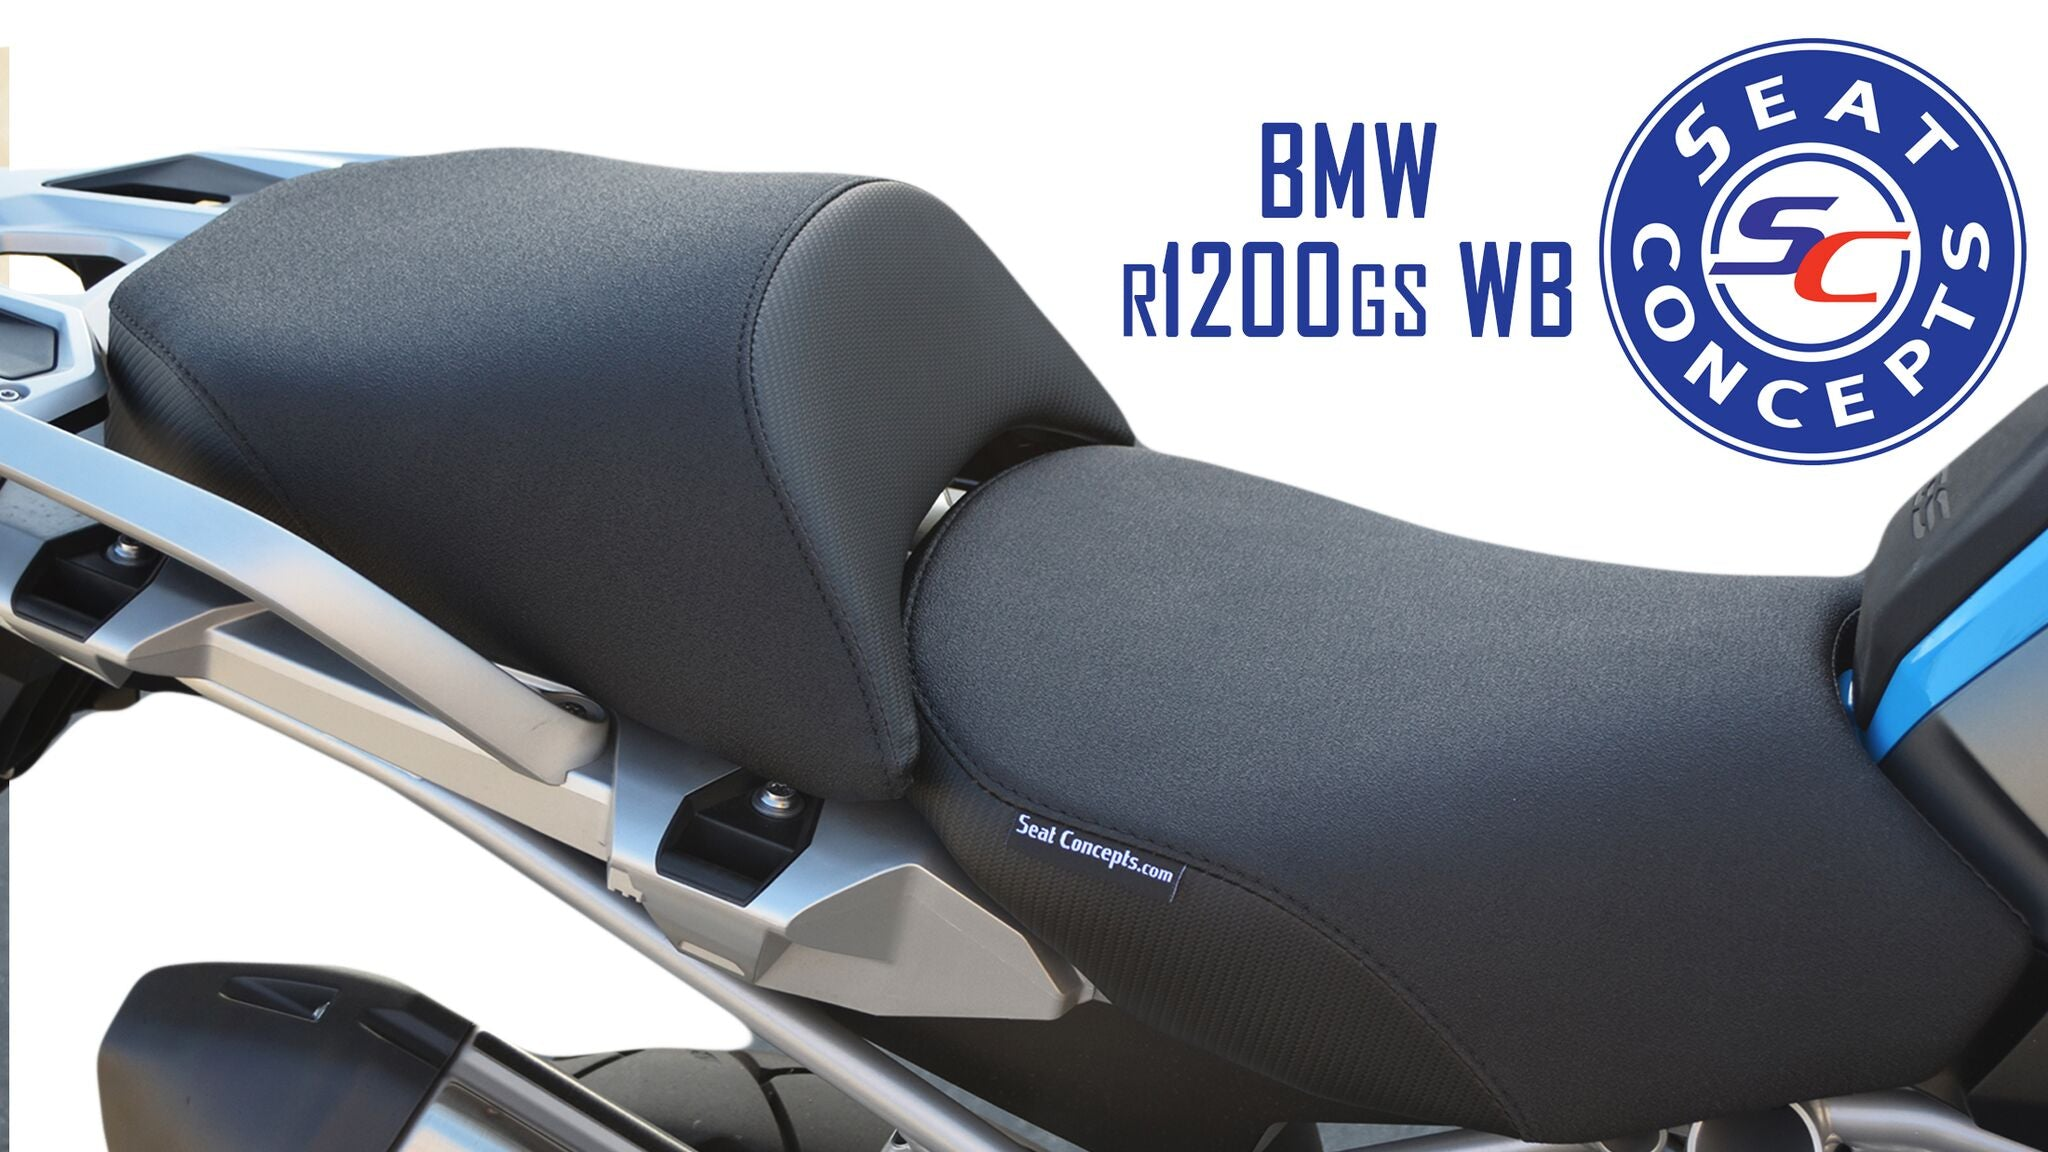 Super Bmw 2013 19 R1200Gs A R1250Gs A Comfort Seat Concepts Ocoug Best Dining Table And Chair Ideas Images Ocougorg